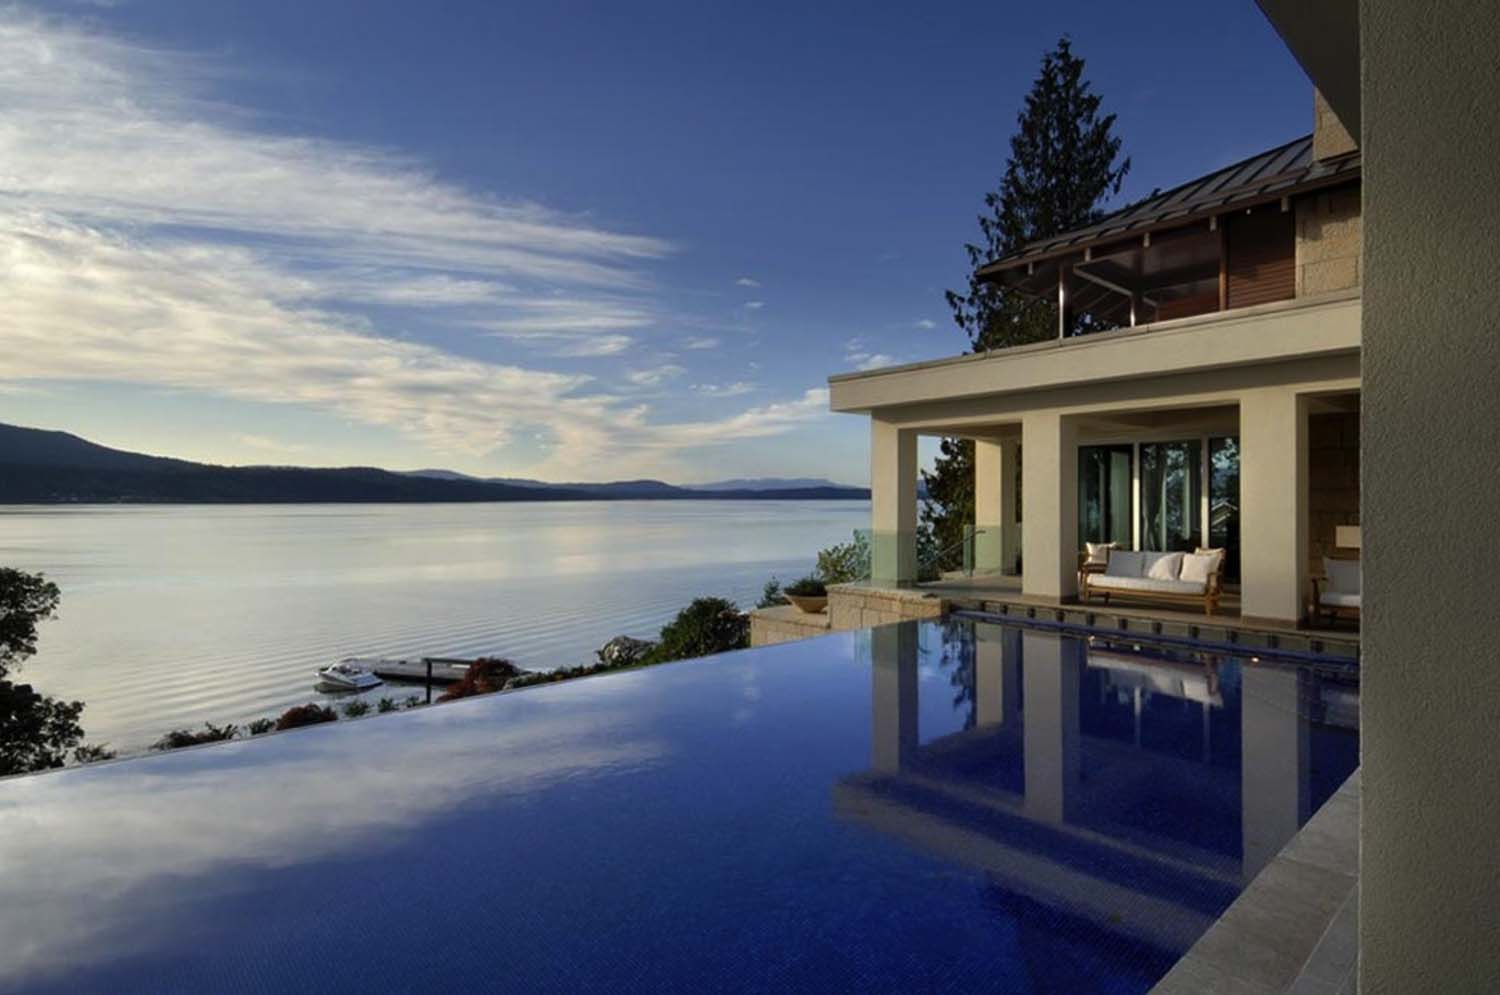 vancouver-island-residence-mckinley-burkart-architects-14-1-kindesign